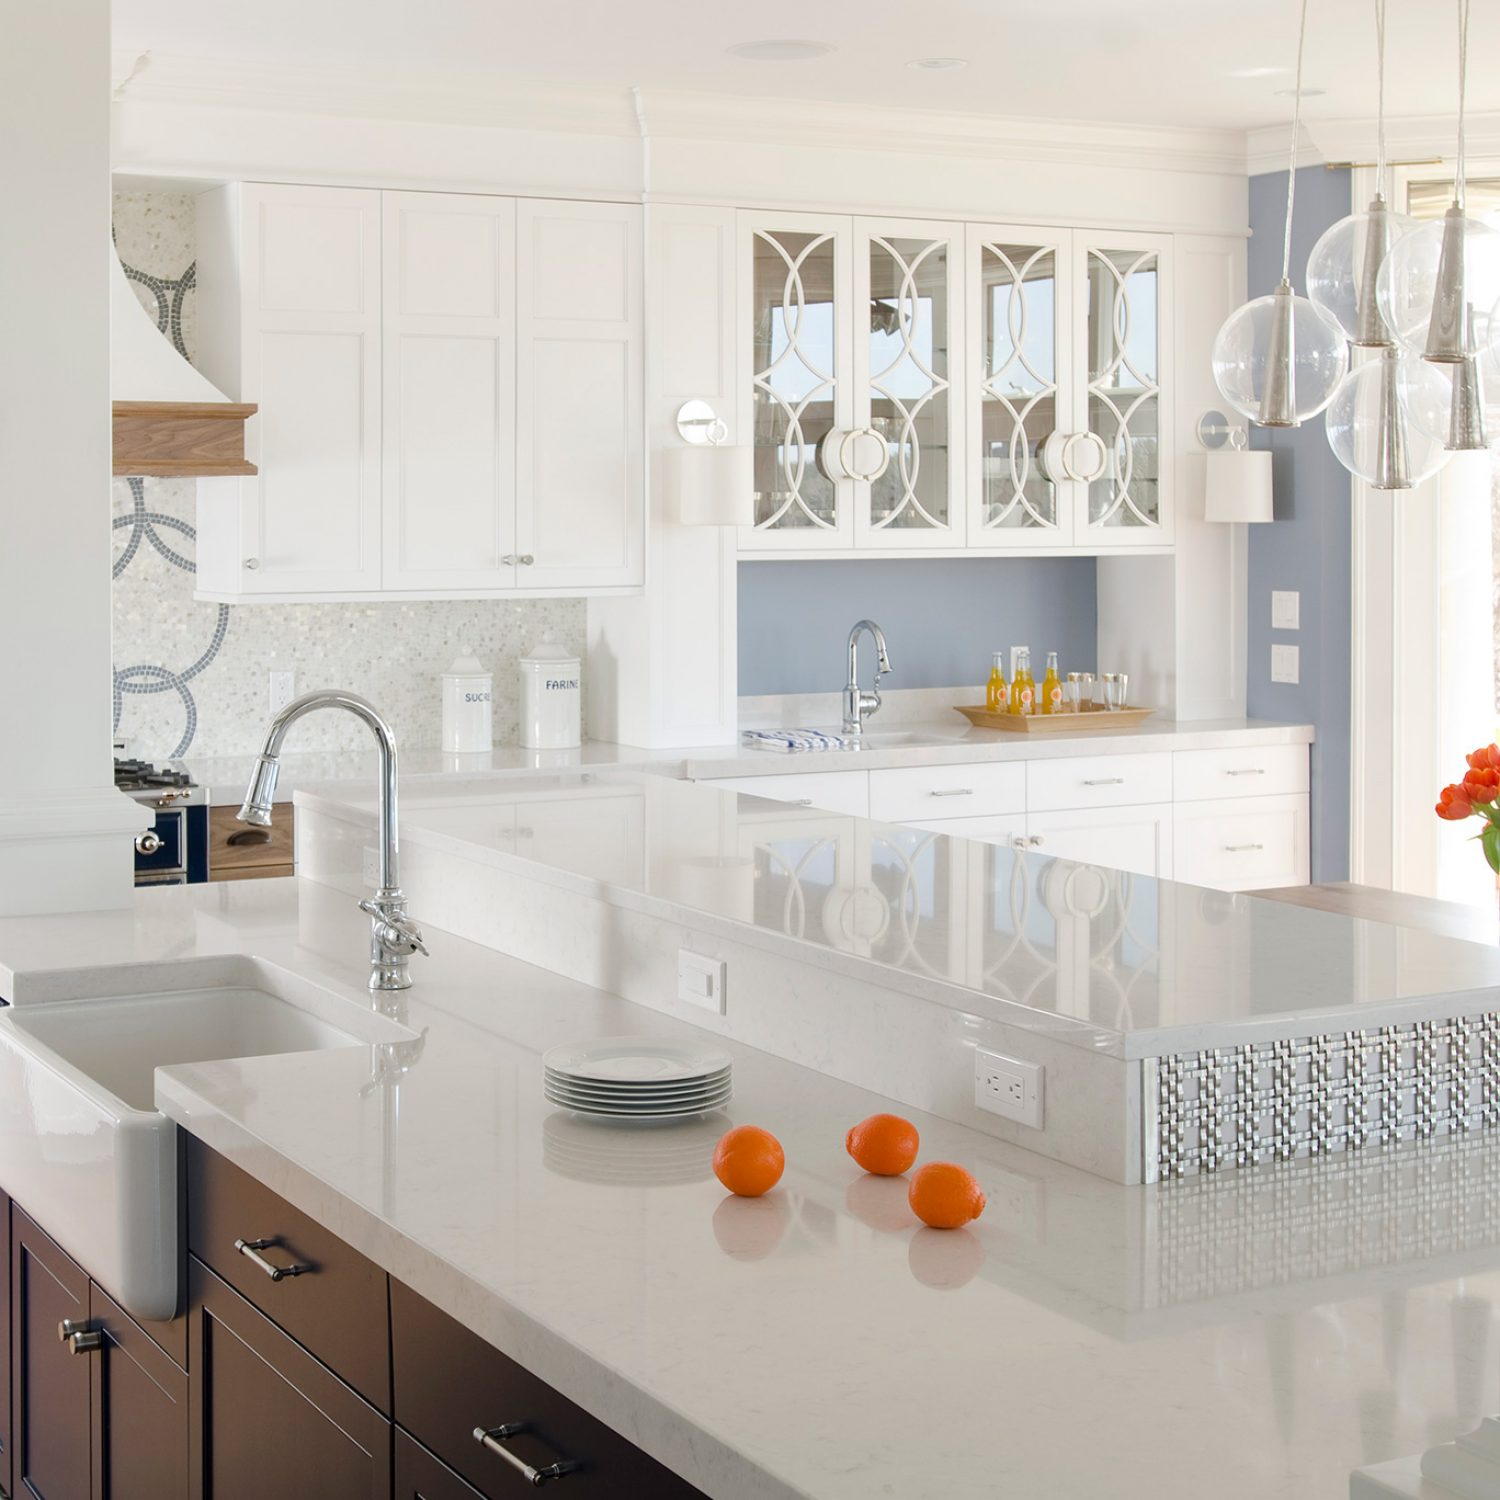 Counter tops with oranges on it in a modern kitchen